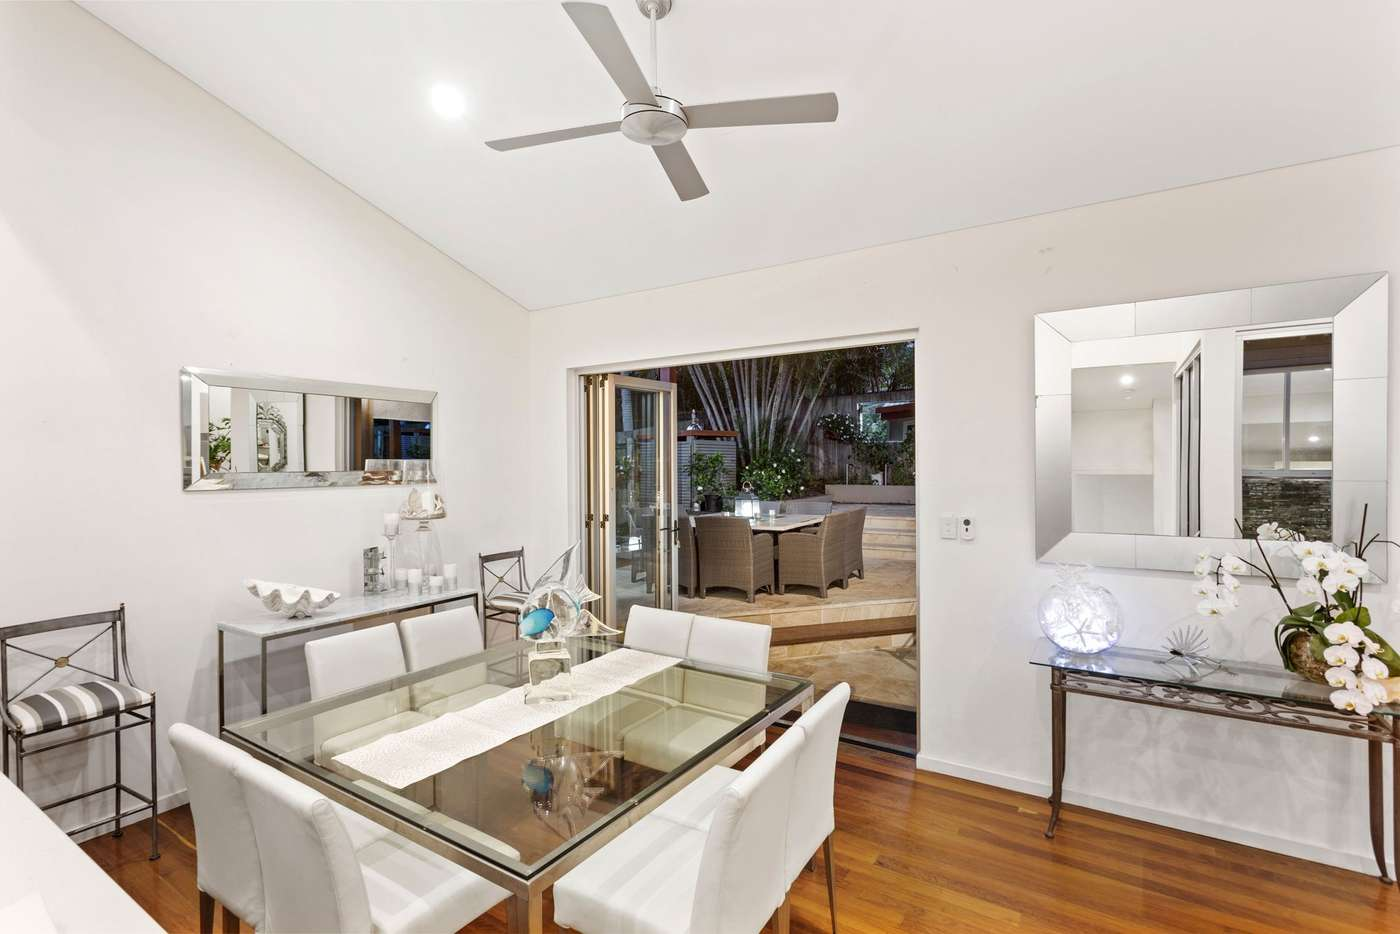 Fifth view of Homely house listing, 29 Toulambi Street, Noosa Heads QLD 4567